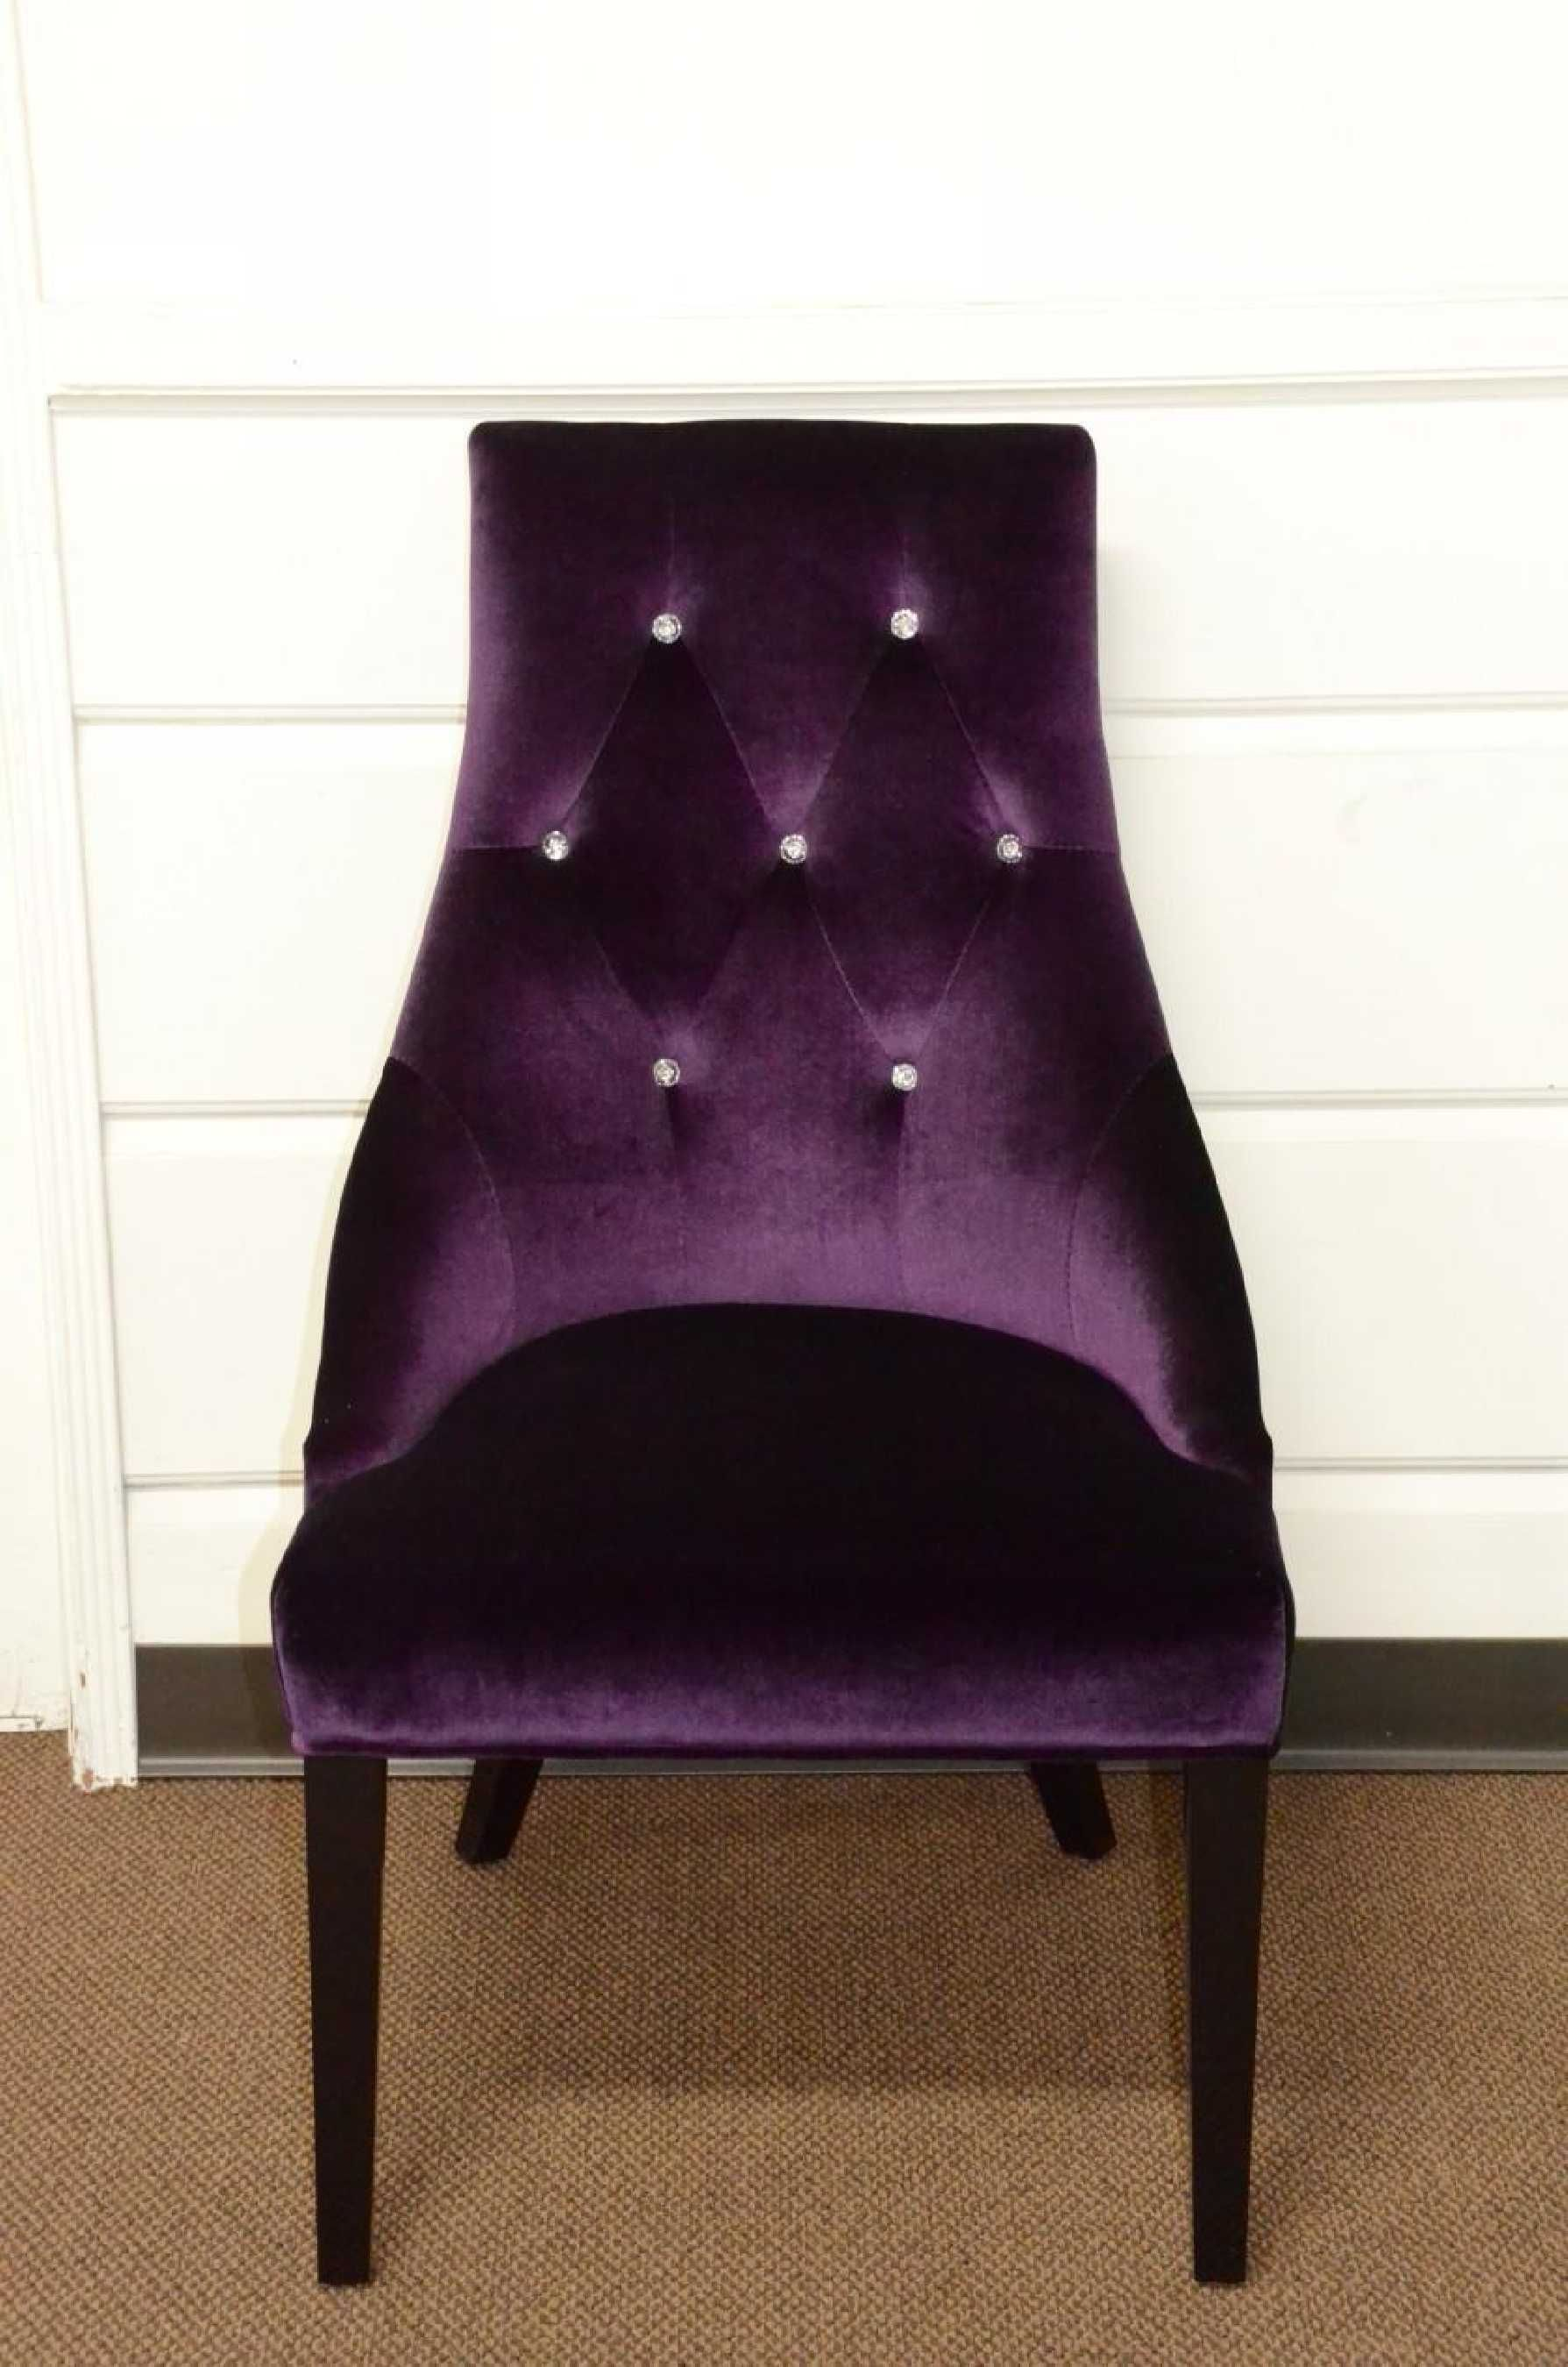 Purple Upholstered Dining Chairs Bed Pillow Chair With Arms Vig Furniture Armani Xavira Velour